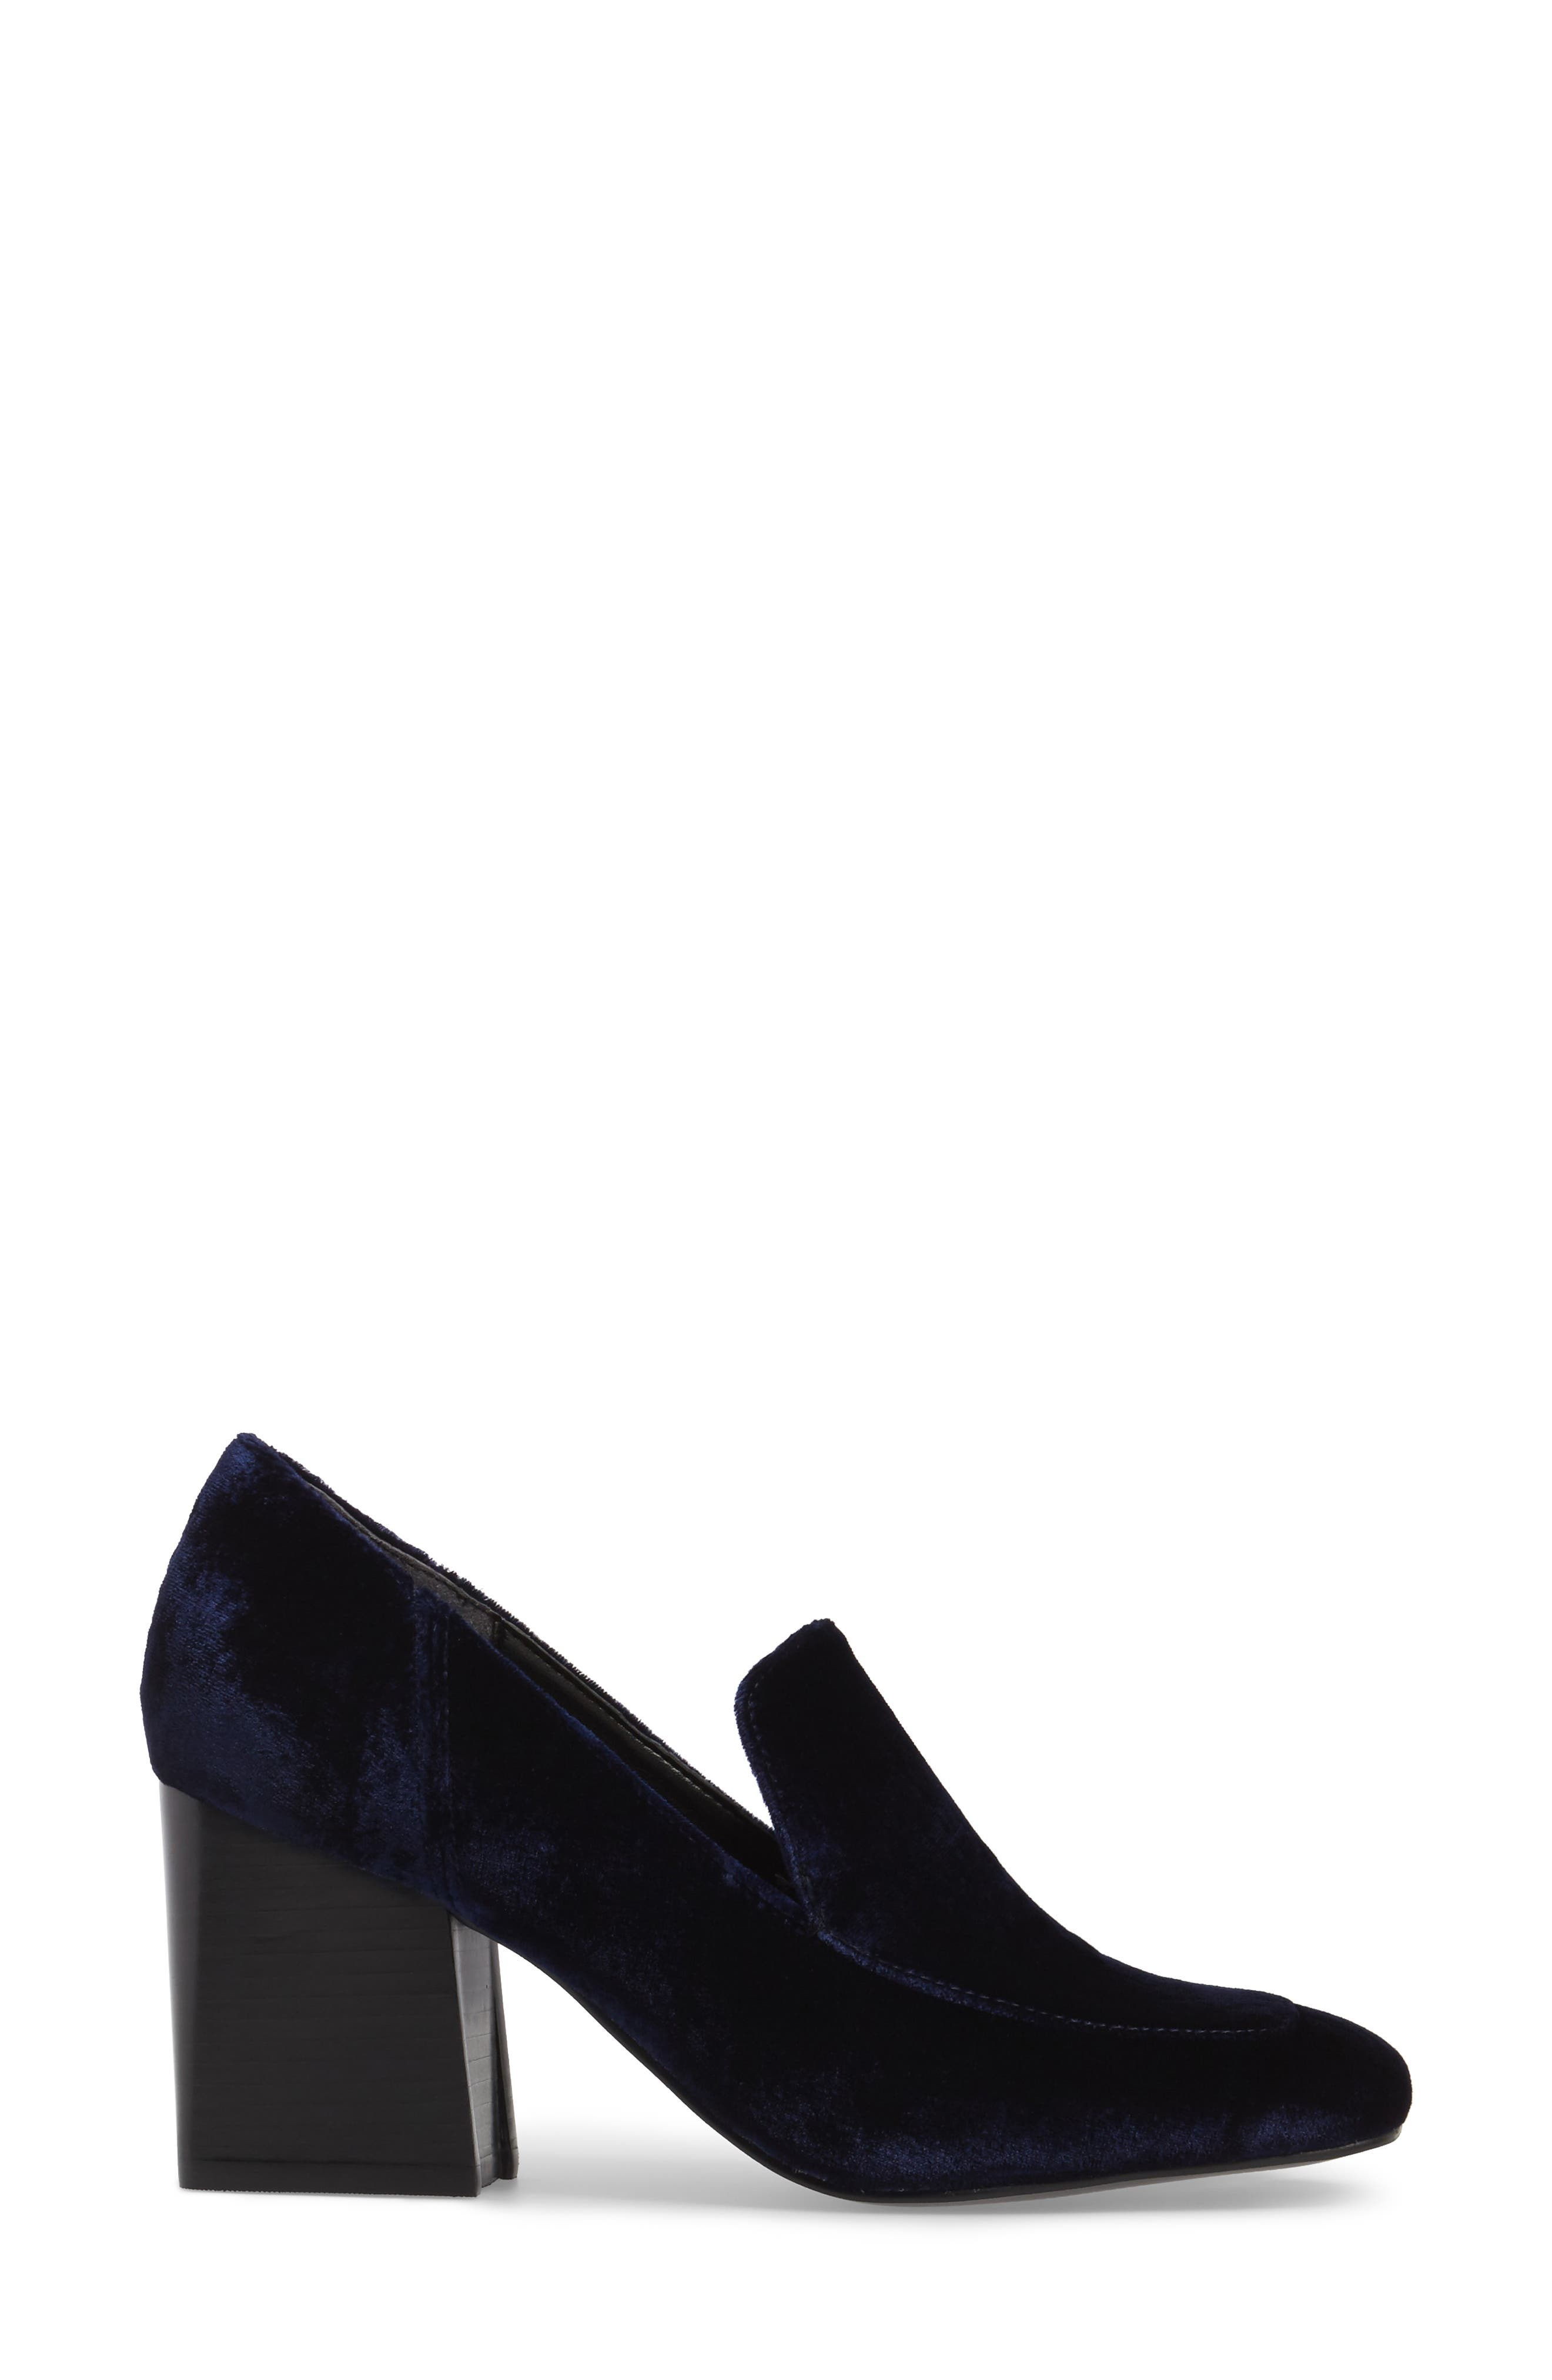 Marlo Loafer Pump,                             Alternate thumbnail 15, color,